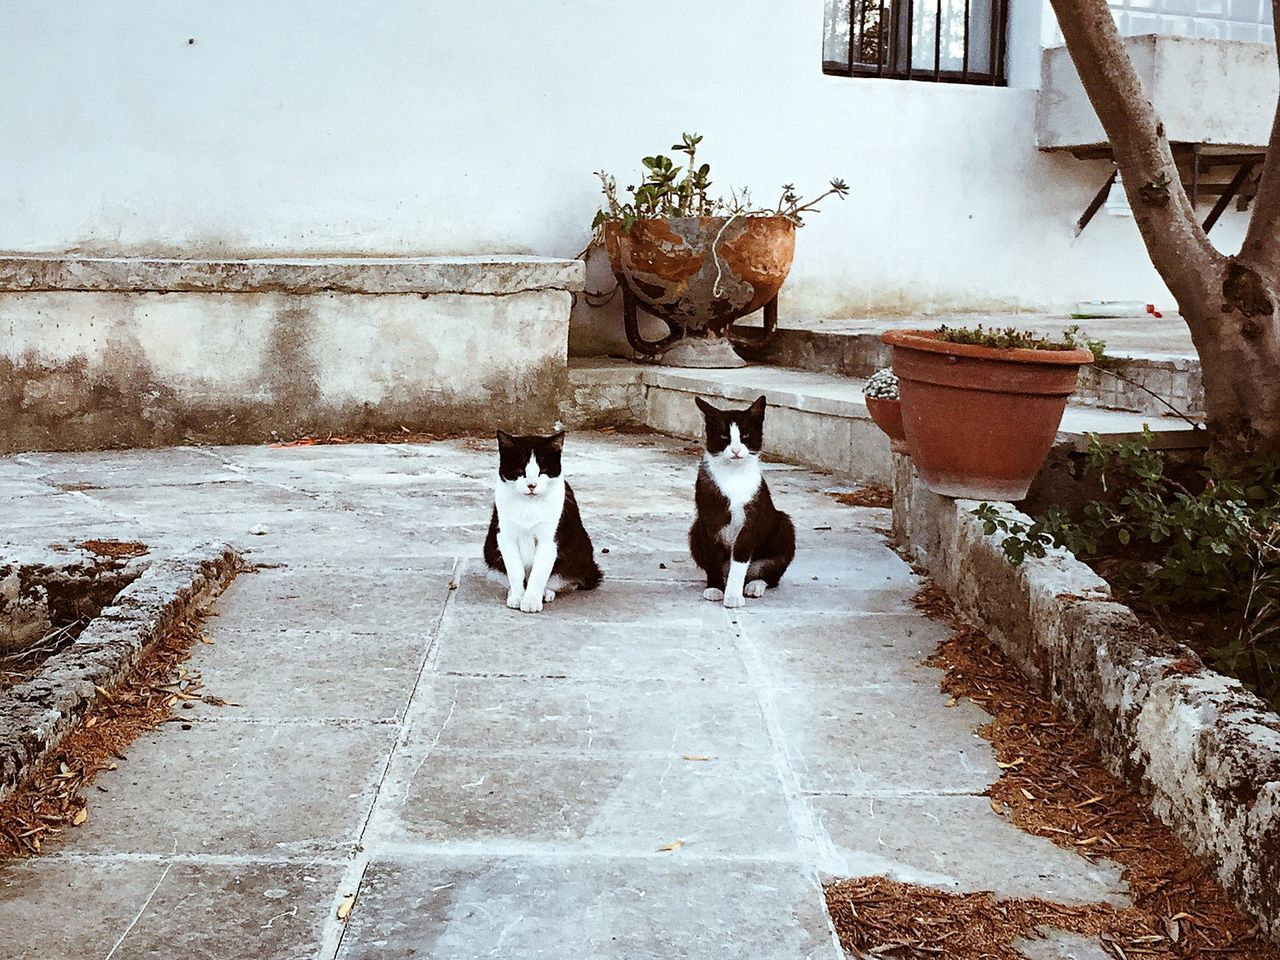 Cats sitting on footpath against building